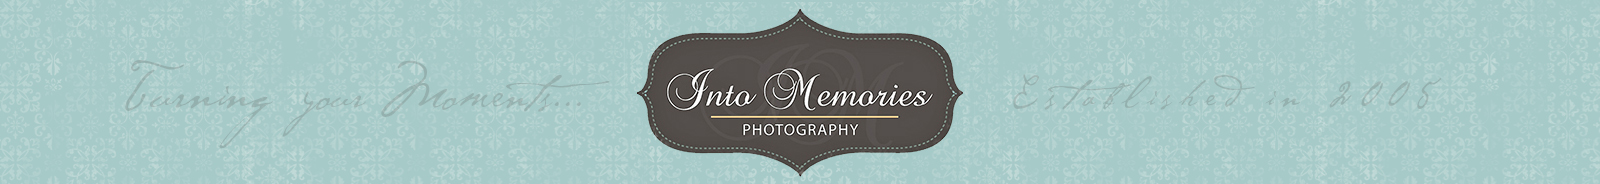 Pam & Dave are a CNY Wedding & Portrait Photography team based in Liverpool, NY and serving Syracuse/CNY areas.ries Photography | Based in Liverpool, NY, Serving CNY, Adirondacks and areas of NNY logo